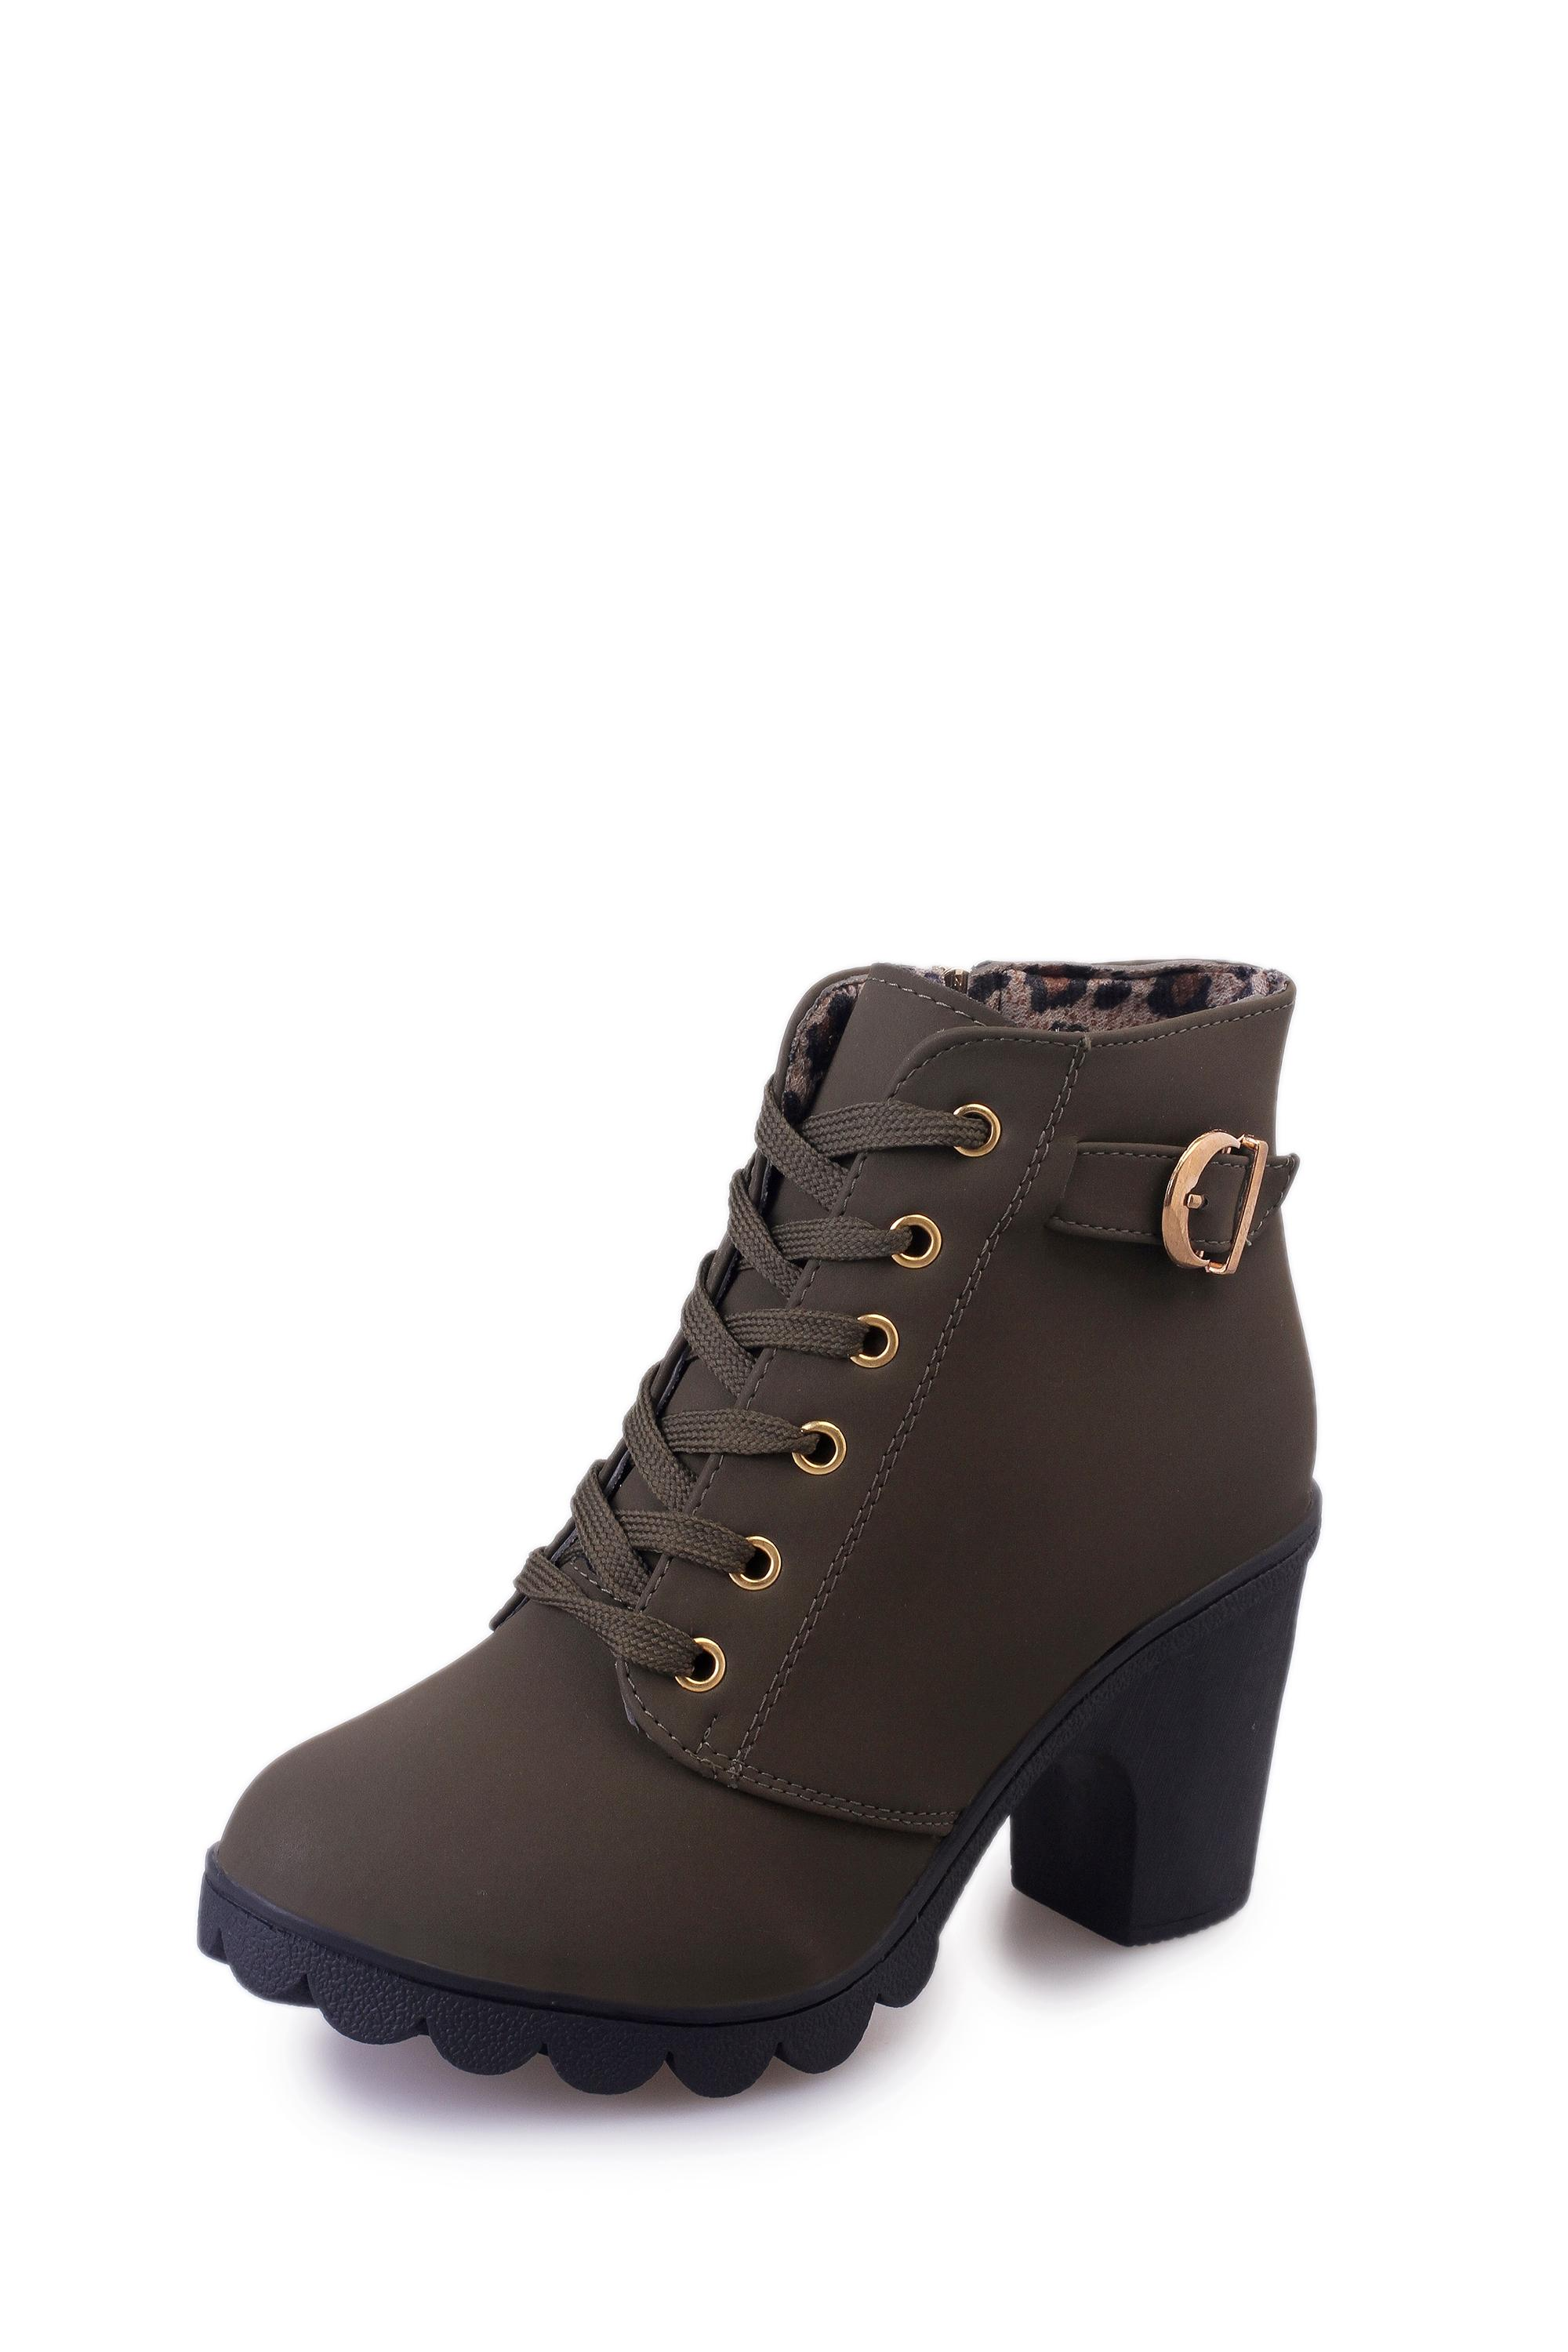 Winter Boots for Women for sale - Womens Snow Boots online brands ... b56c07992